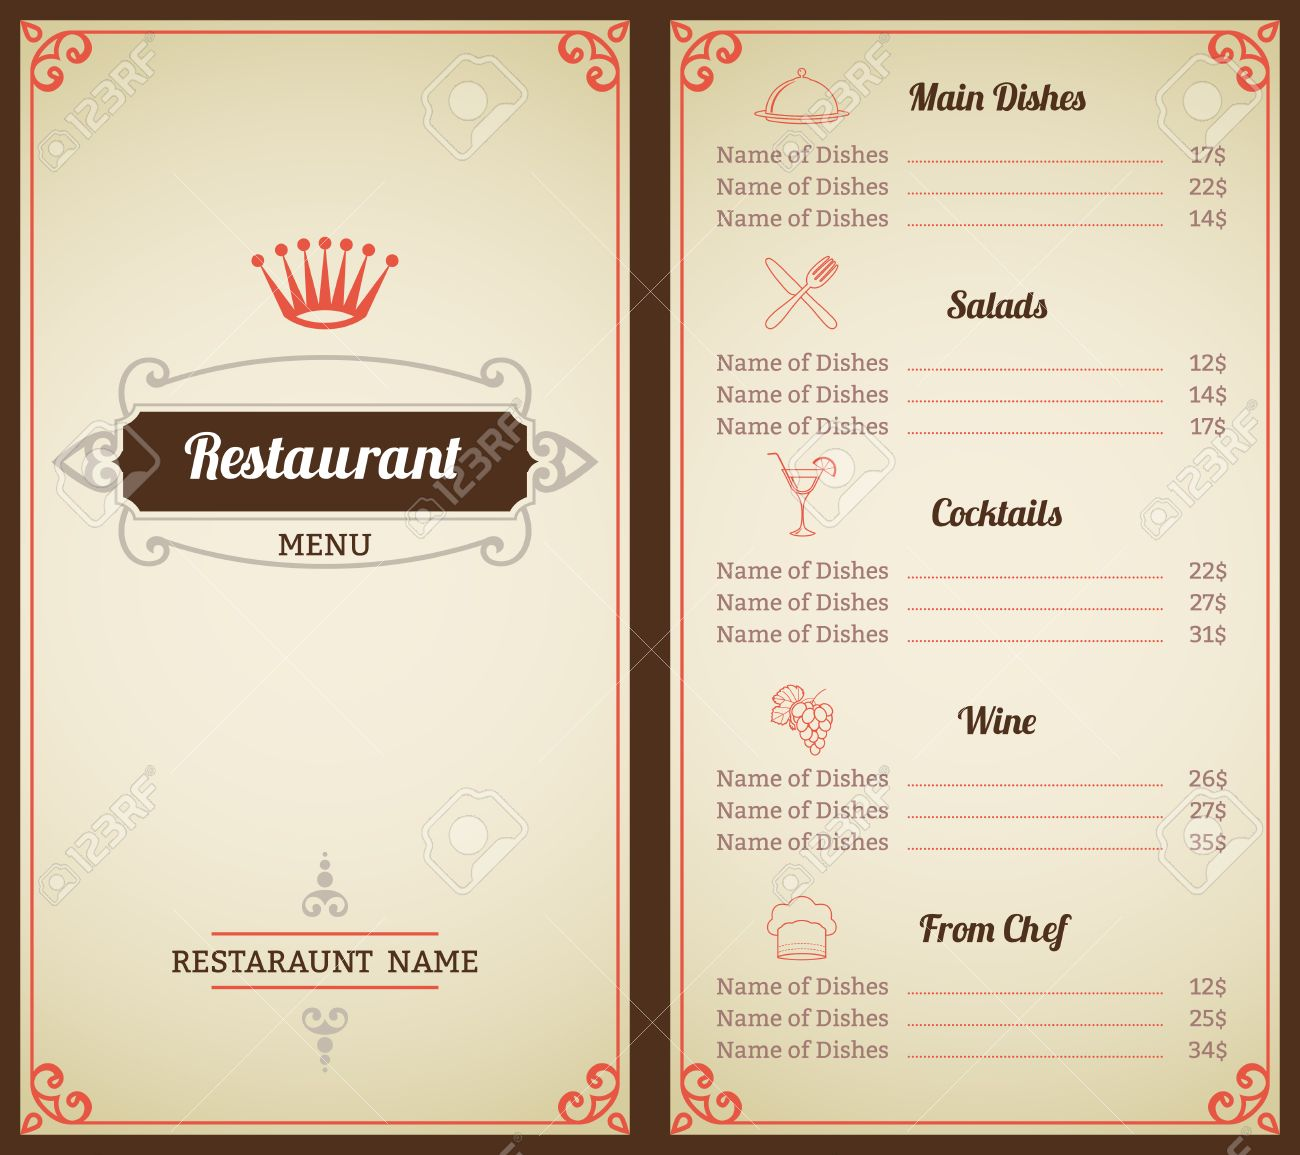 Restaurant Menu List Brochure With Food And Drink Decorative Elements  Illustration Stock Vector   32945237